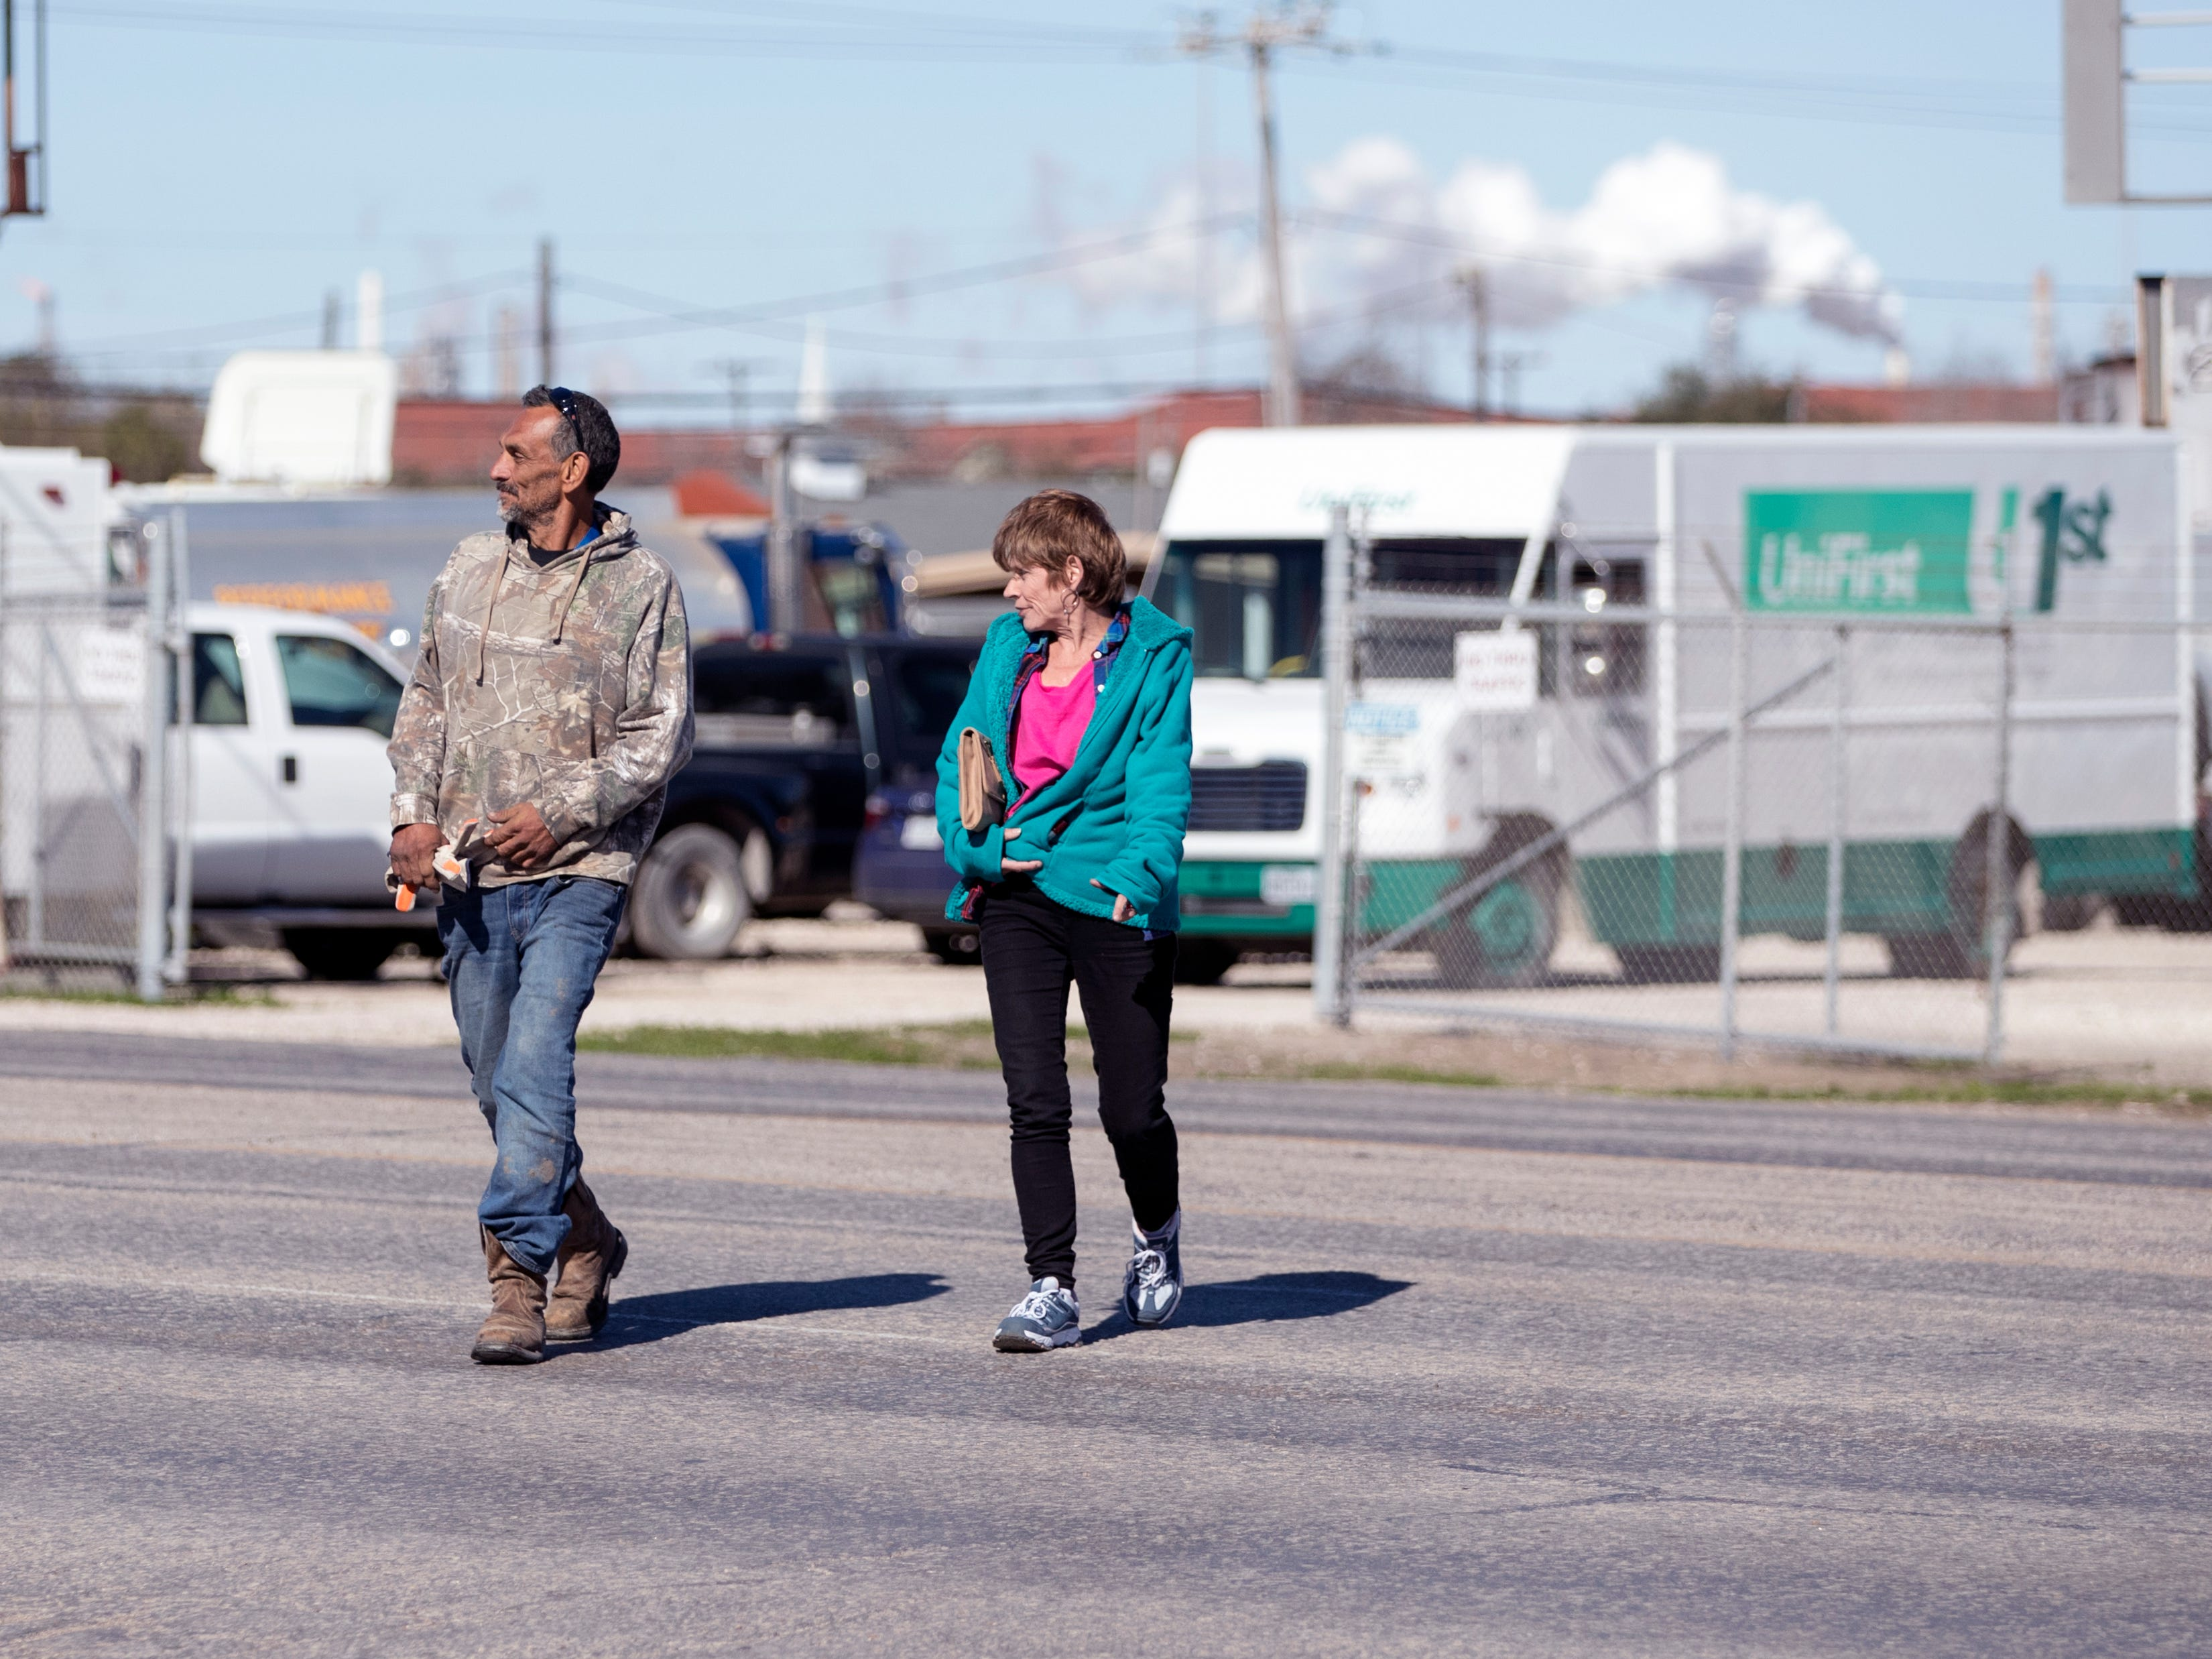 People cross the street without using a crosswalk in the 5400 block of Leopard Street on Tuesday, Jan. 29, 2019. Statistics from the Corpus Christi Police Department show that a high number of auto-pedestrian accidents take place in the 5400 block of Leopard Street.